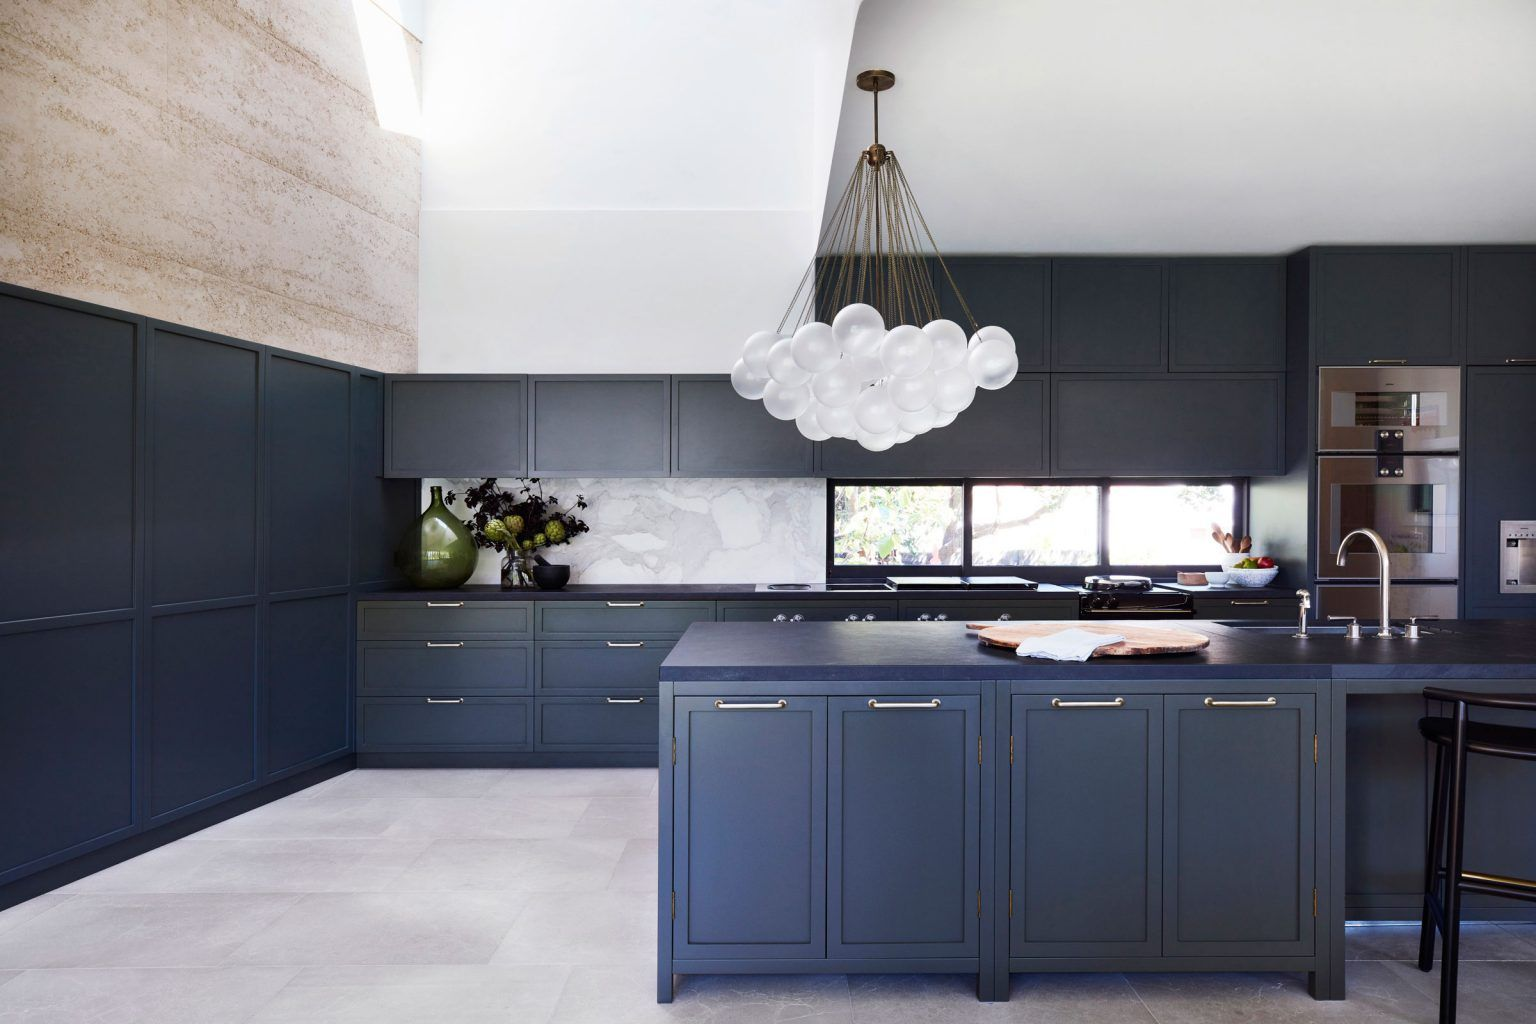 An Enduring Permanence The Village House By Luigi Rosselli Architects And Decus Interiors In 2020 Rammed Earth Homes Kitchen Design Kitchen Space